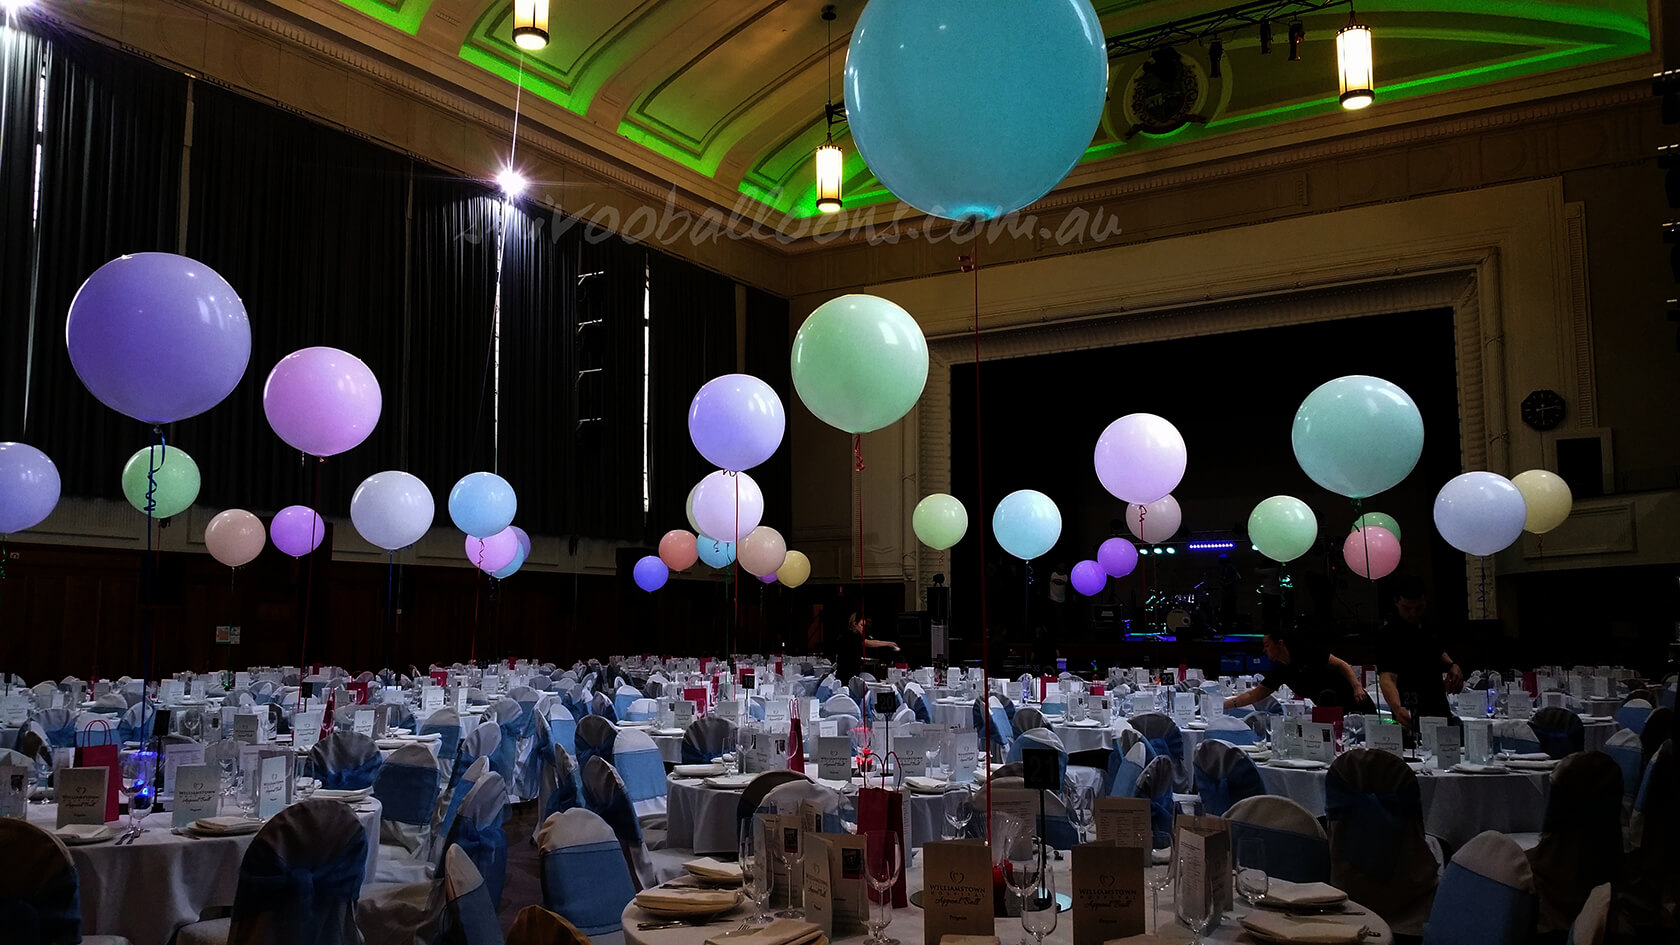 See Our Events! - image CE-67 on https://shivooballoons.com.au